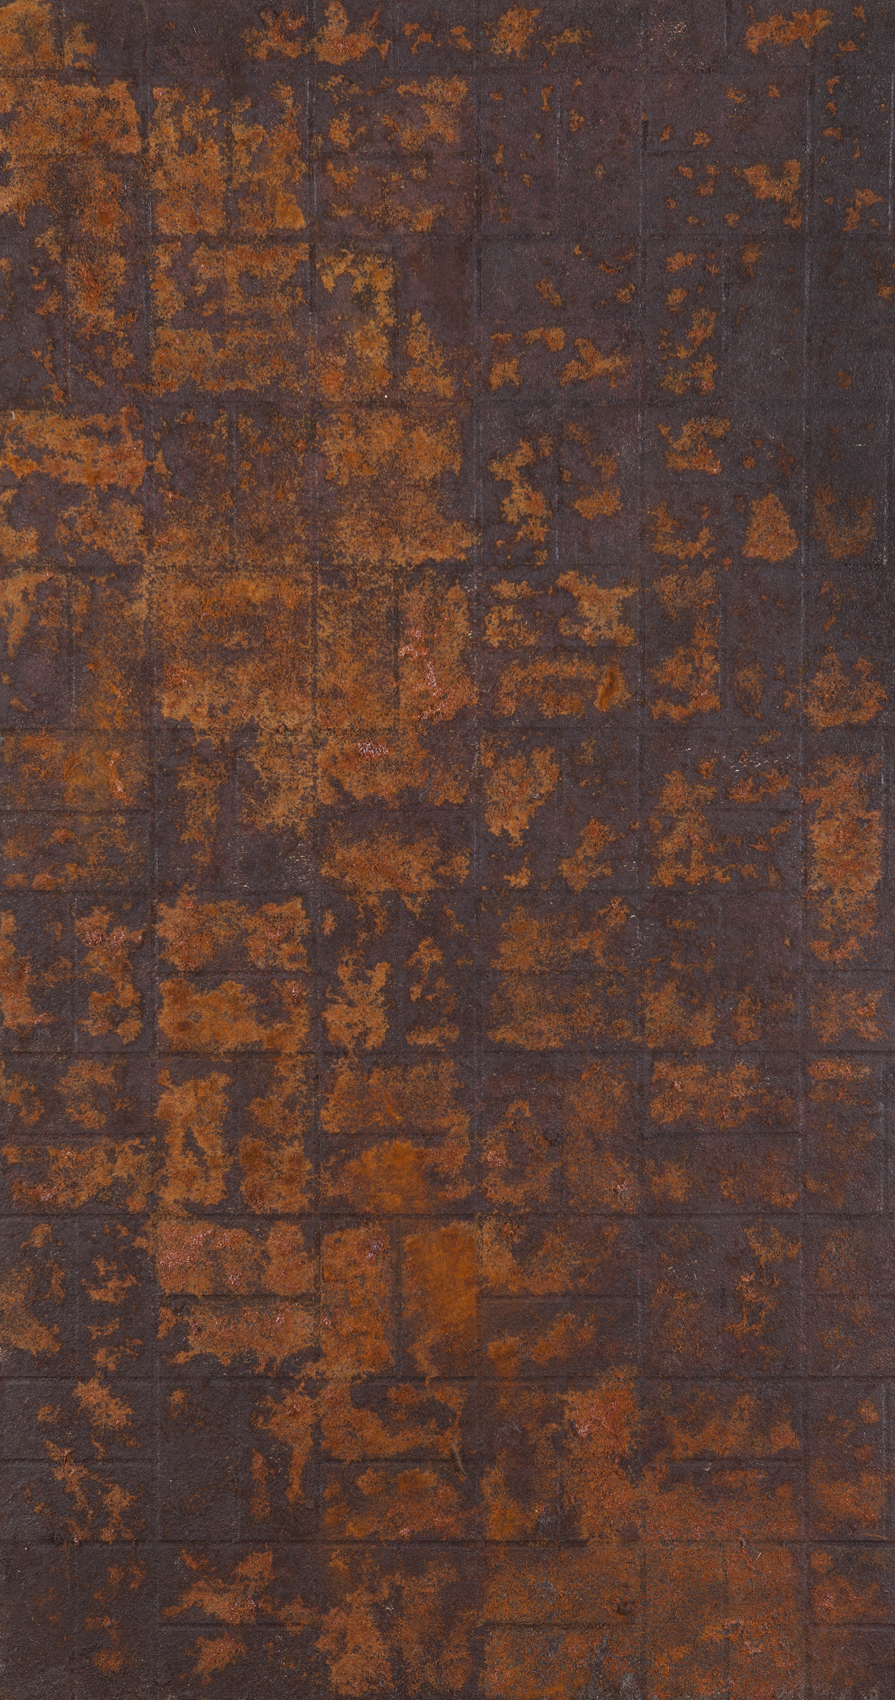 Gal Weinstein   Untitled  2016 Steel wool and rust on plywood 150 x 80 cm